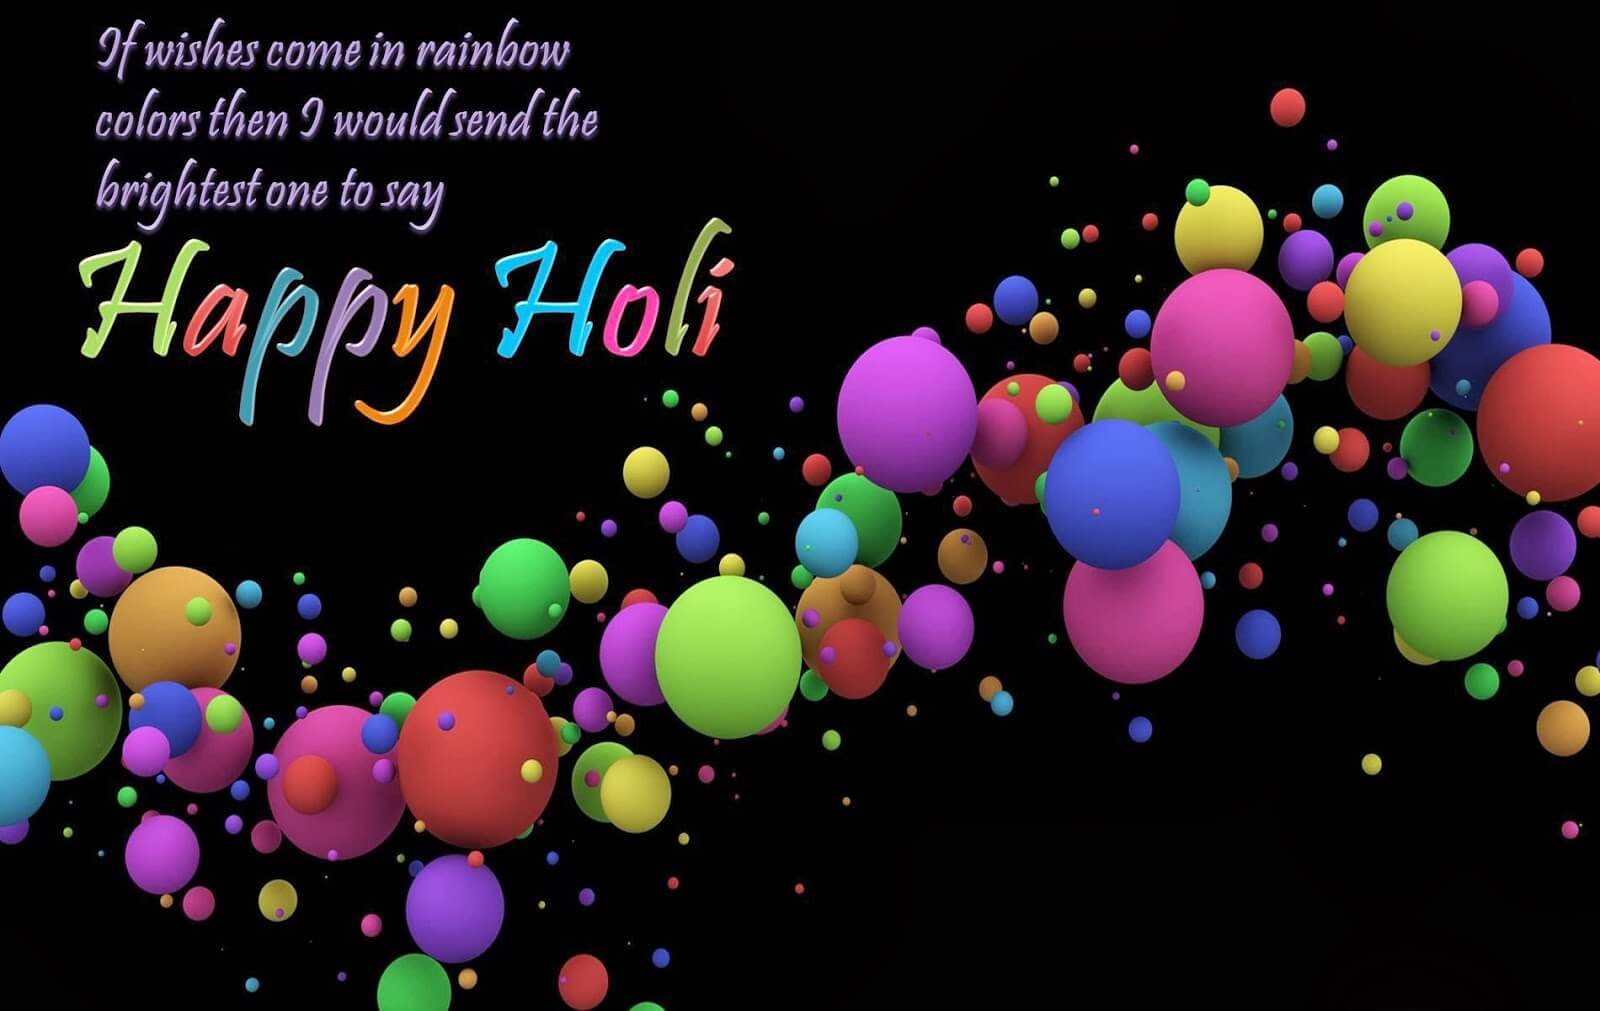 happy holi 2019 poetry in english